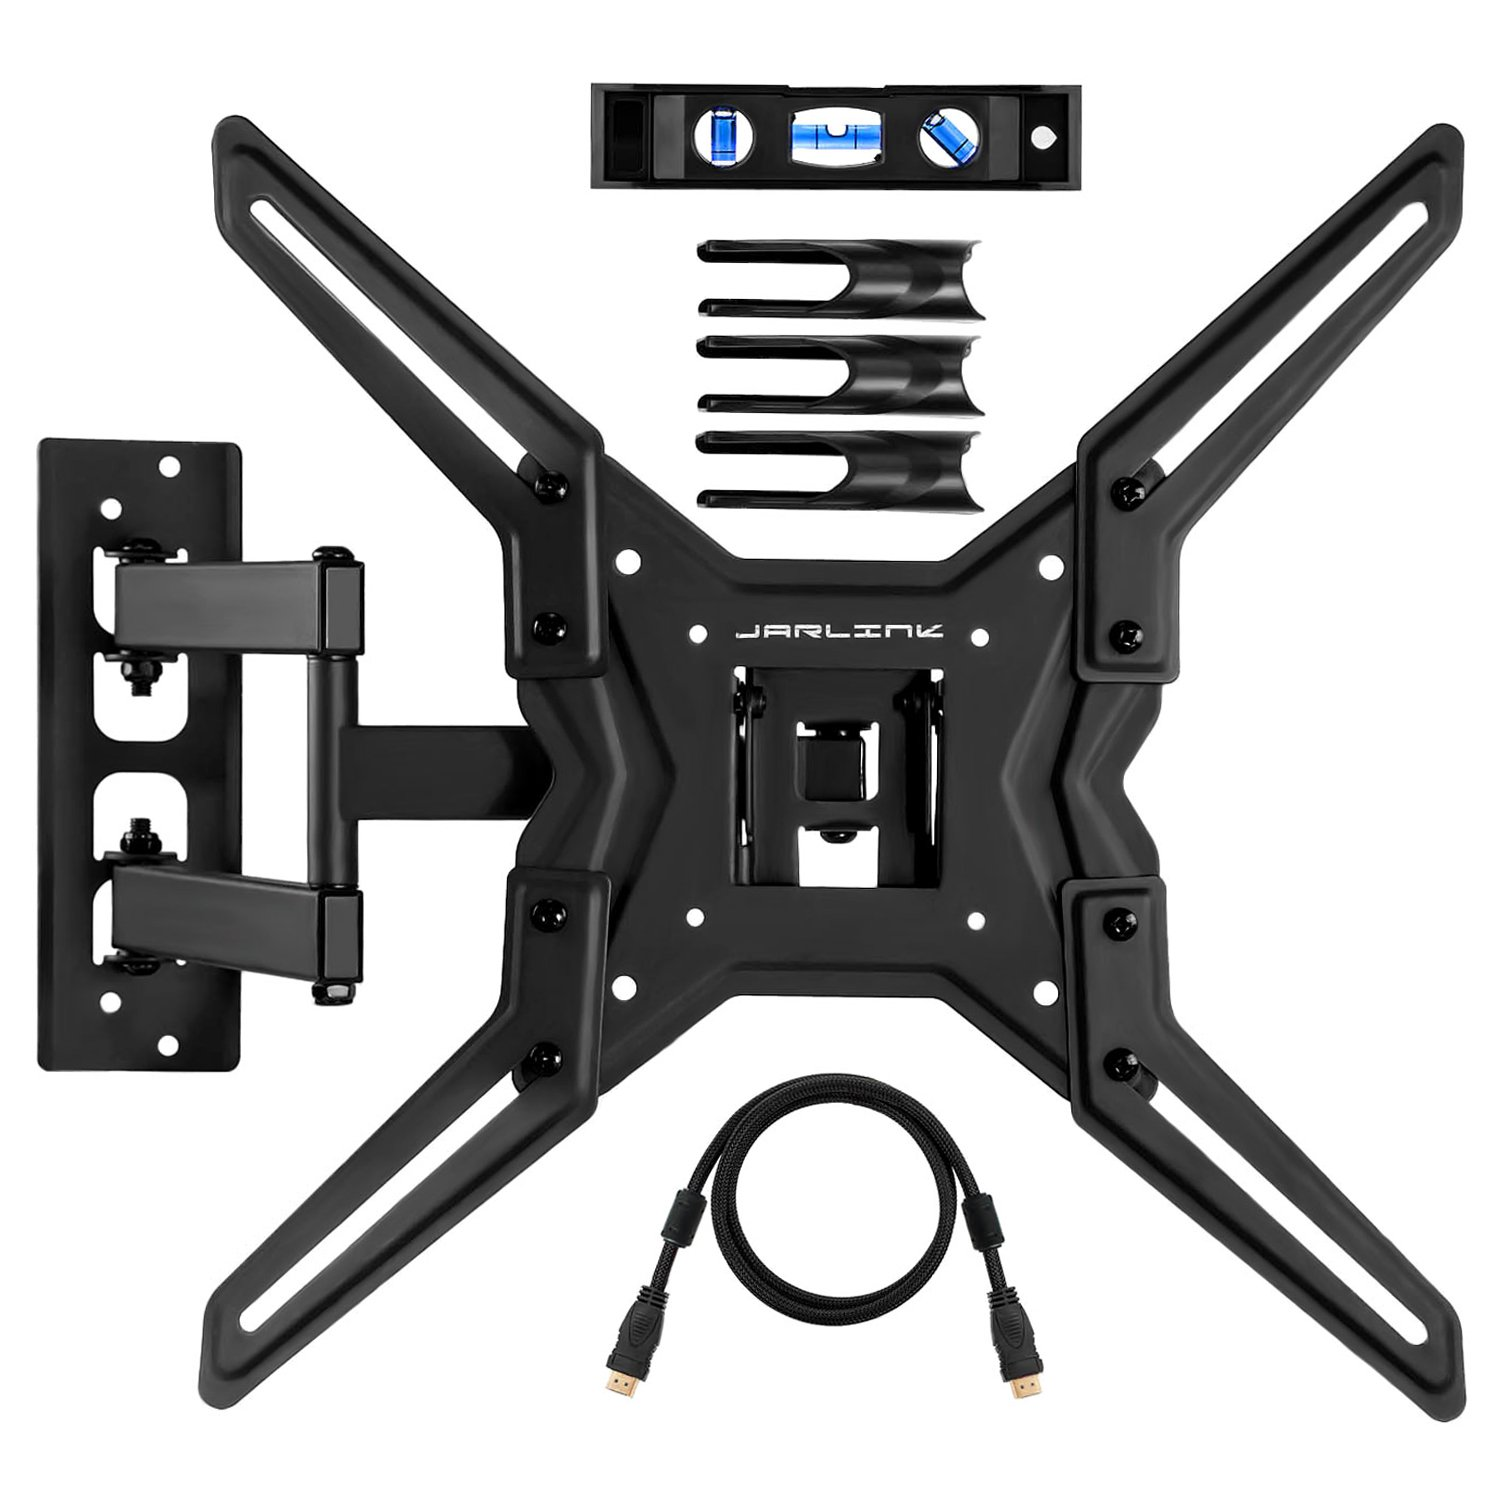 Jarlink VM443A TV Wall Mount Full Motion Bracket for Most 26-55 Inch with Articulating Arm Tilting Swivel LED LCD Plasma Flat Screen Monitor up to VESA 400x400mm 60 lbs, HDMI Cable & Cable Ties